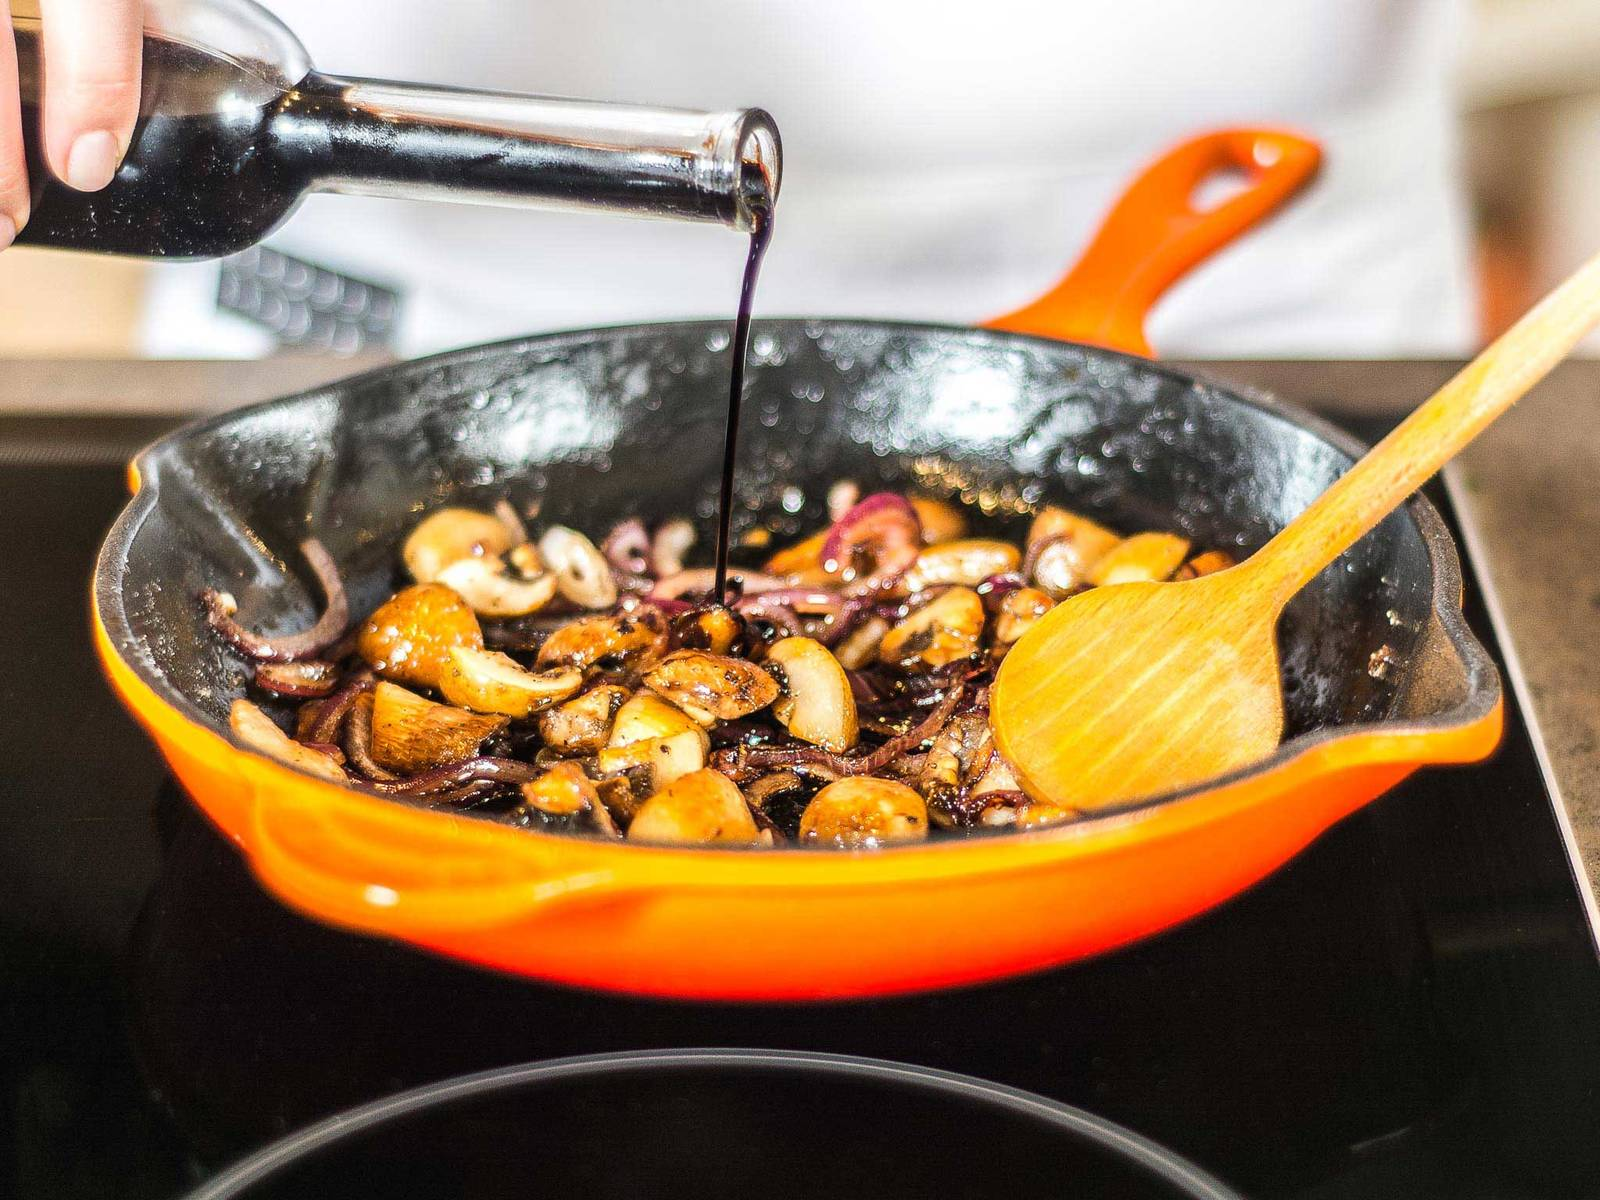 Fry onion and mushrooms in some vegetable oil. Sprinkle with sugar and deglaze pan with balsamic vinegar. Season with salt and pepper. Allow to reduce for approx. 1 - 2 min. Top the polenta with the balsamic mushrooms and sauce.